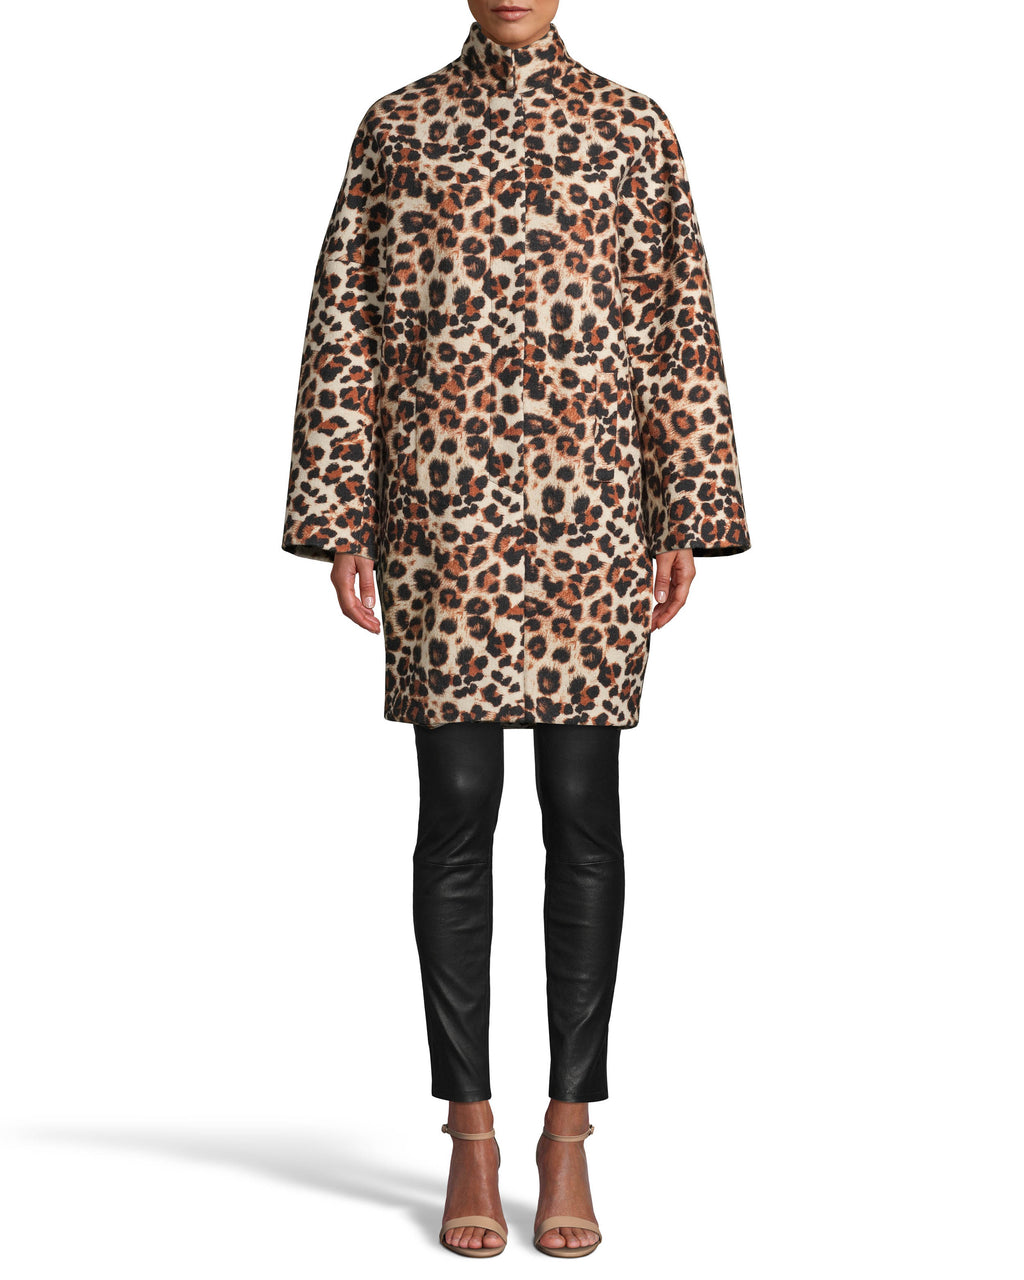 CJ18261 - LEOPARD PRINT WOOL COCOON COAT - outerwear - coats - A statement coat is a fall essential. This wool piece features a a high neck, concealed snap buttons and slight bell sleeves. Add 1 line break Stylist tip: Pair this timeless style with one of our cashmere sweaters and black pants for a chic look.